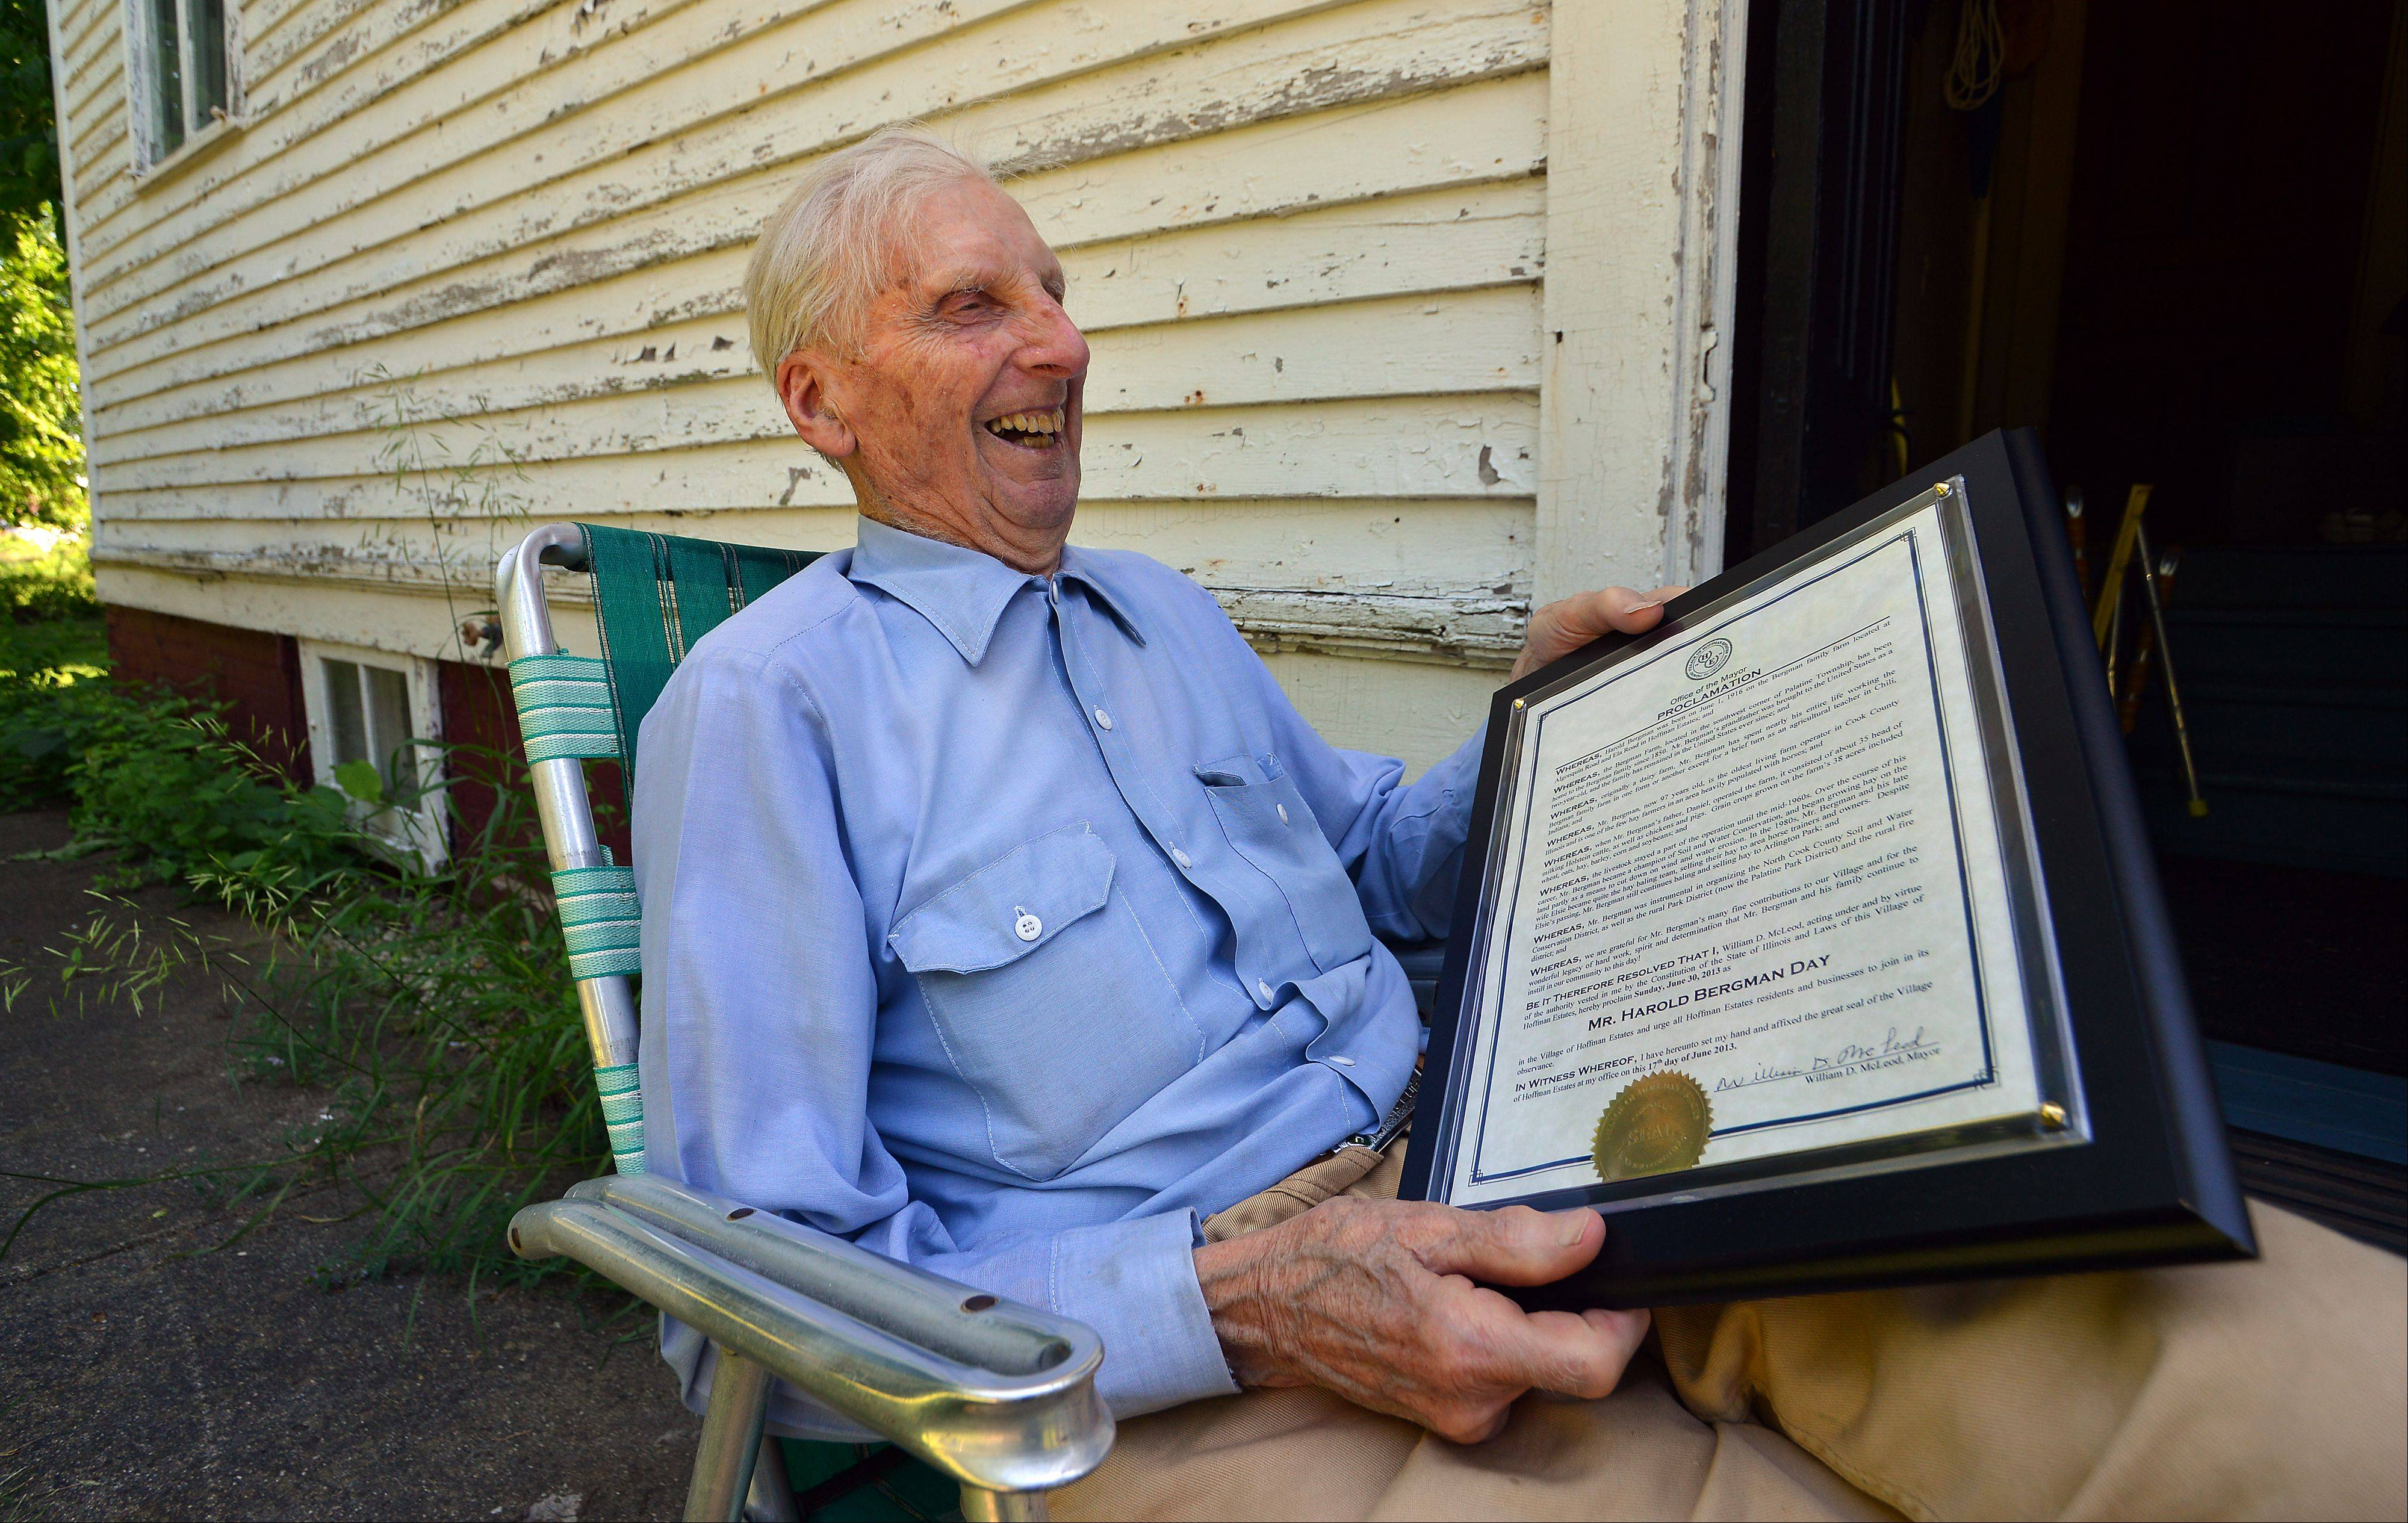 Harold Bergman, 97, of Hoffman Estates sits in his backyard next to the house he was born in smiling as he looks over the proclamation declaring today Harold G. Bergman Day.